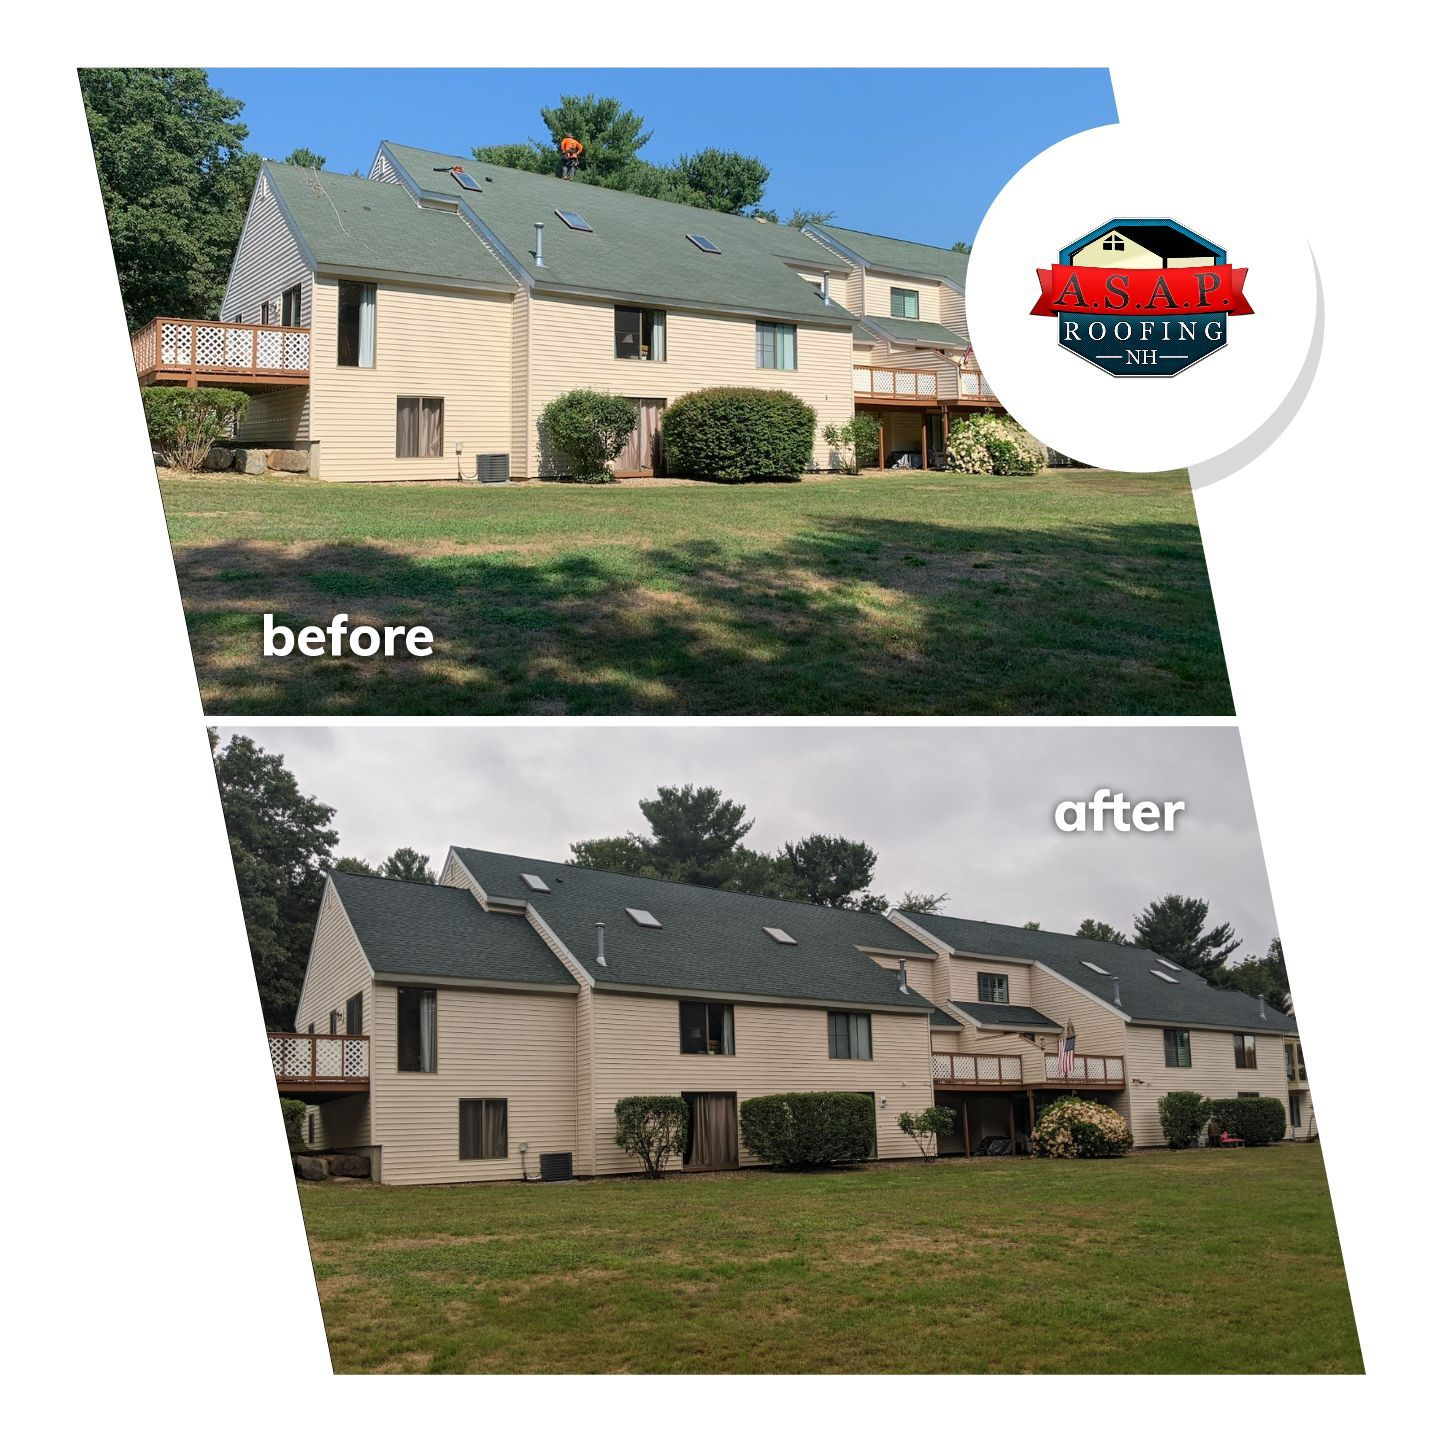 Commercial Roofing Condos at Bryant Woods in Atkinson NH by ASAP Roofing